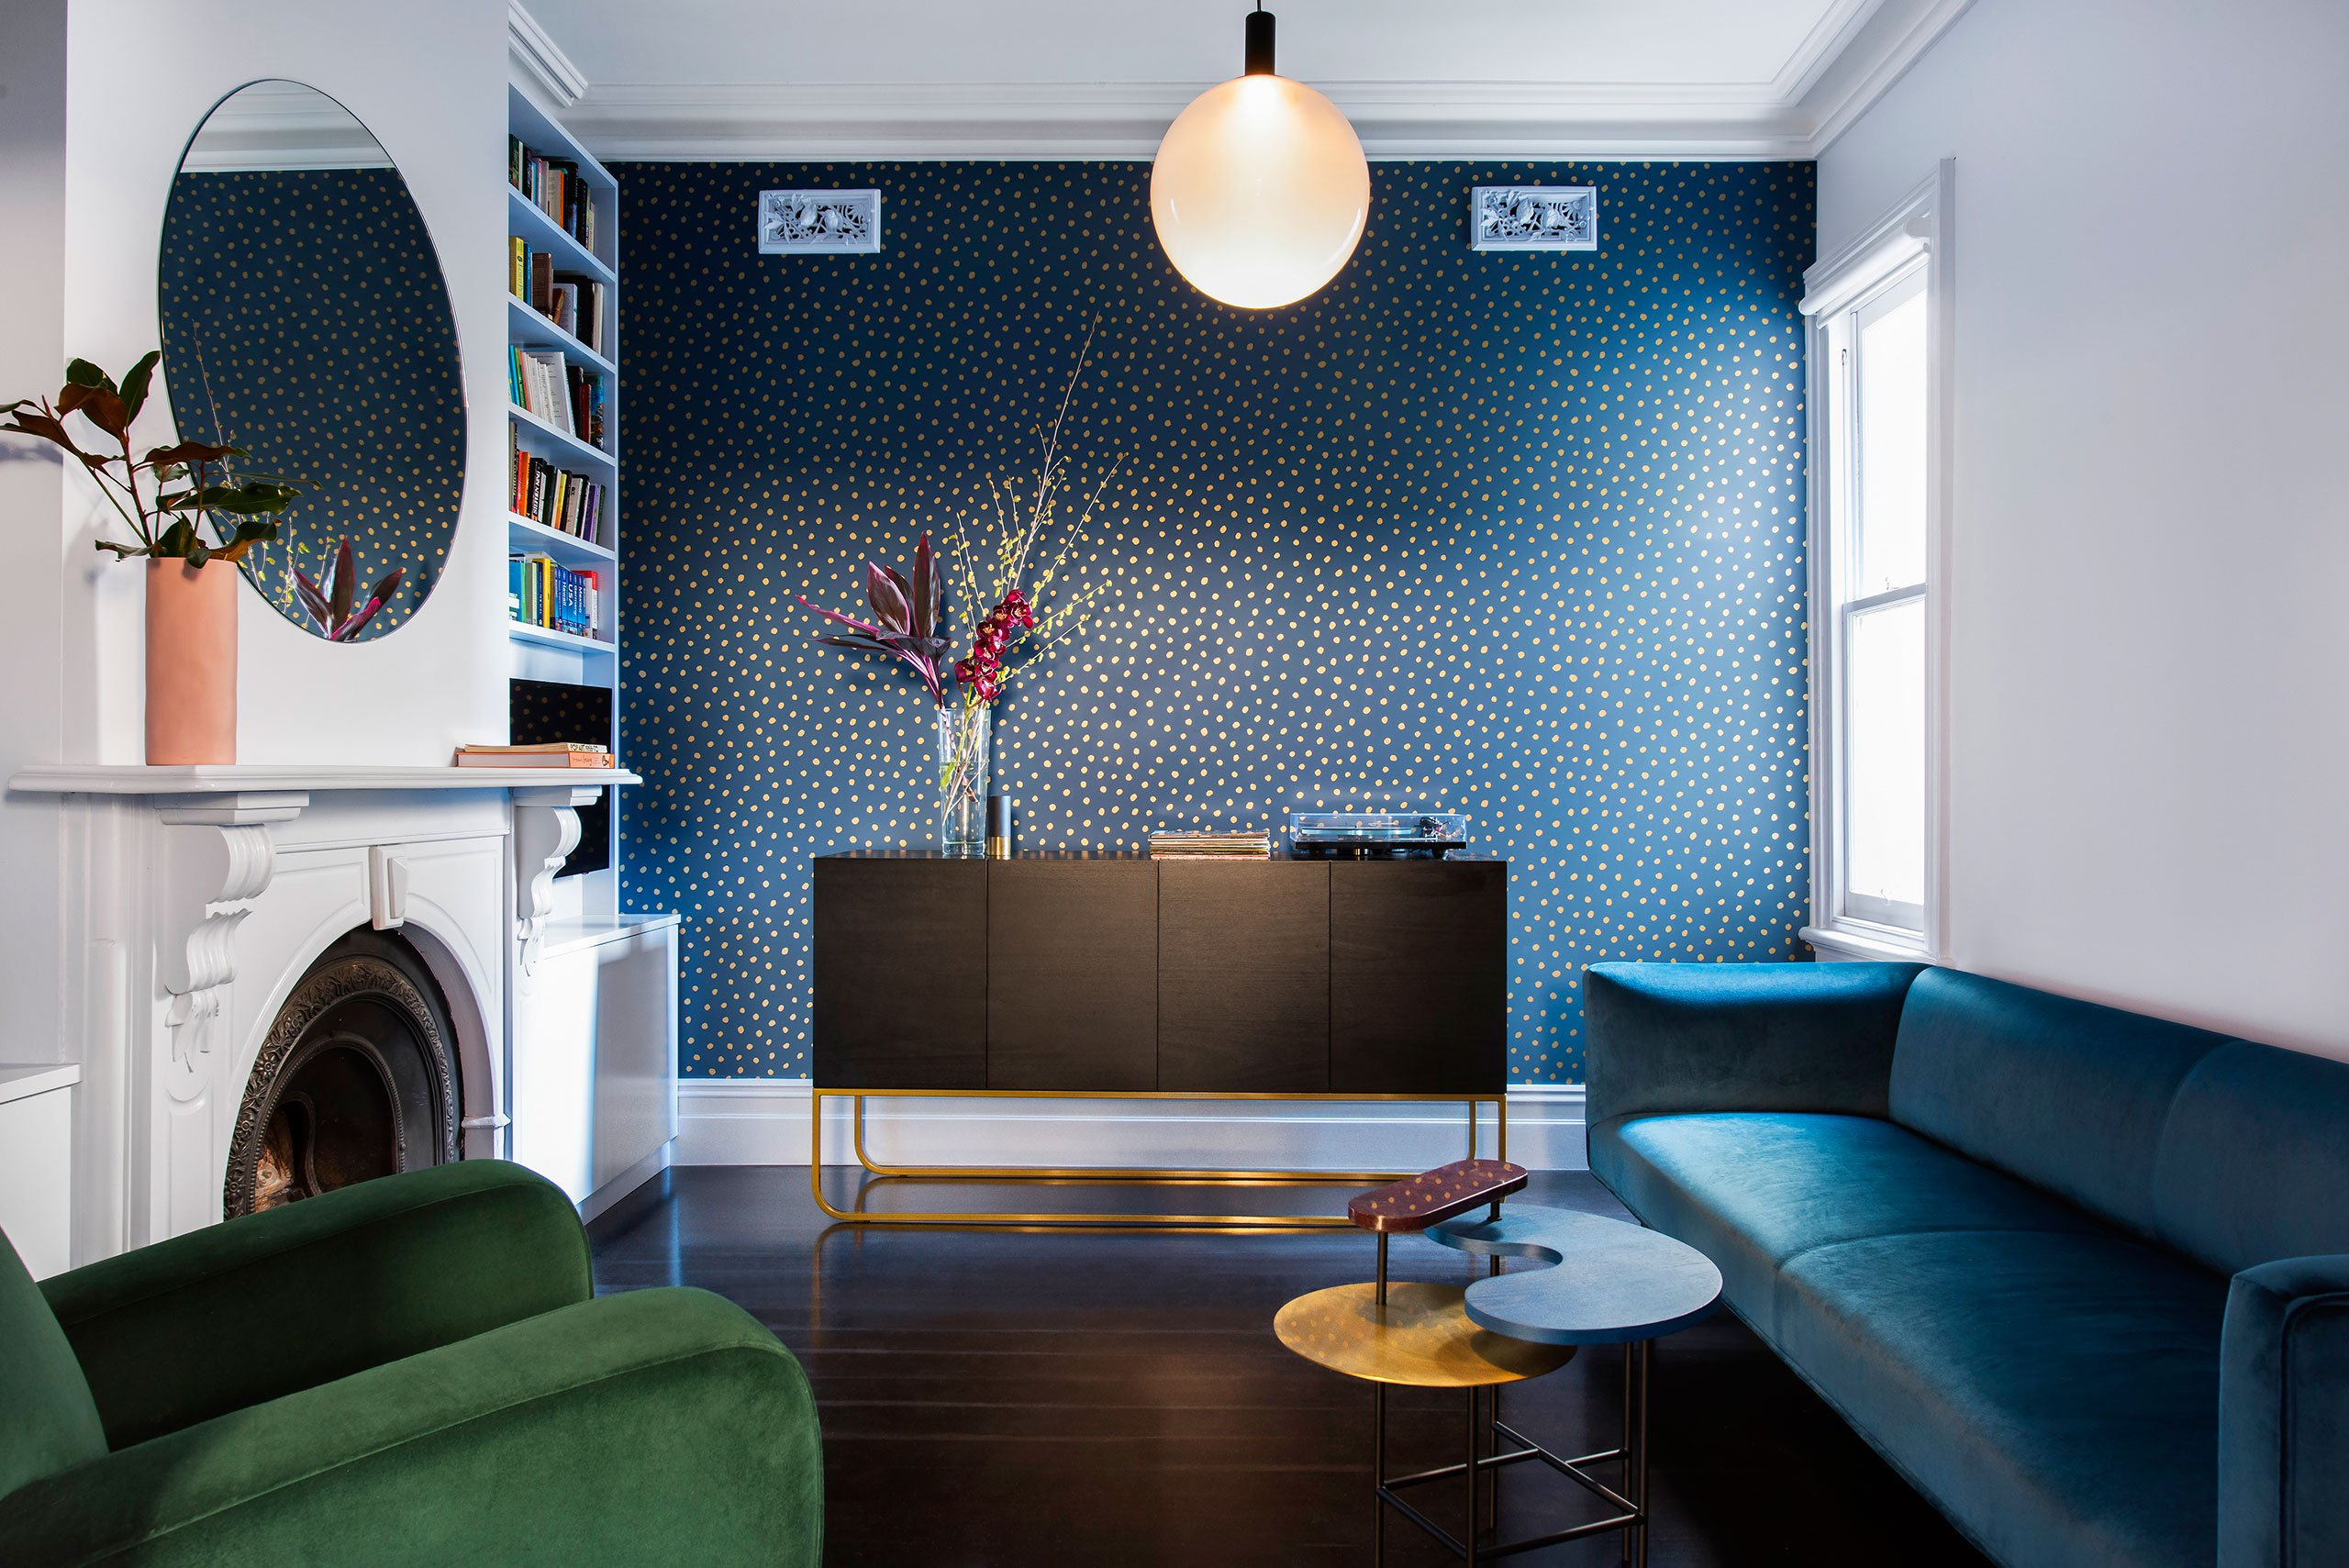 Victorian Renovation Is All About Bold Color